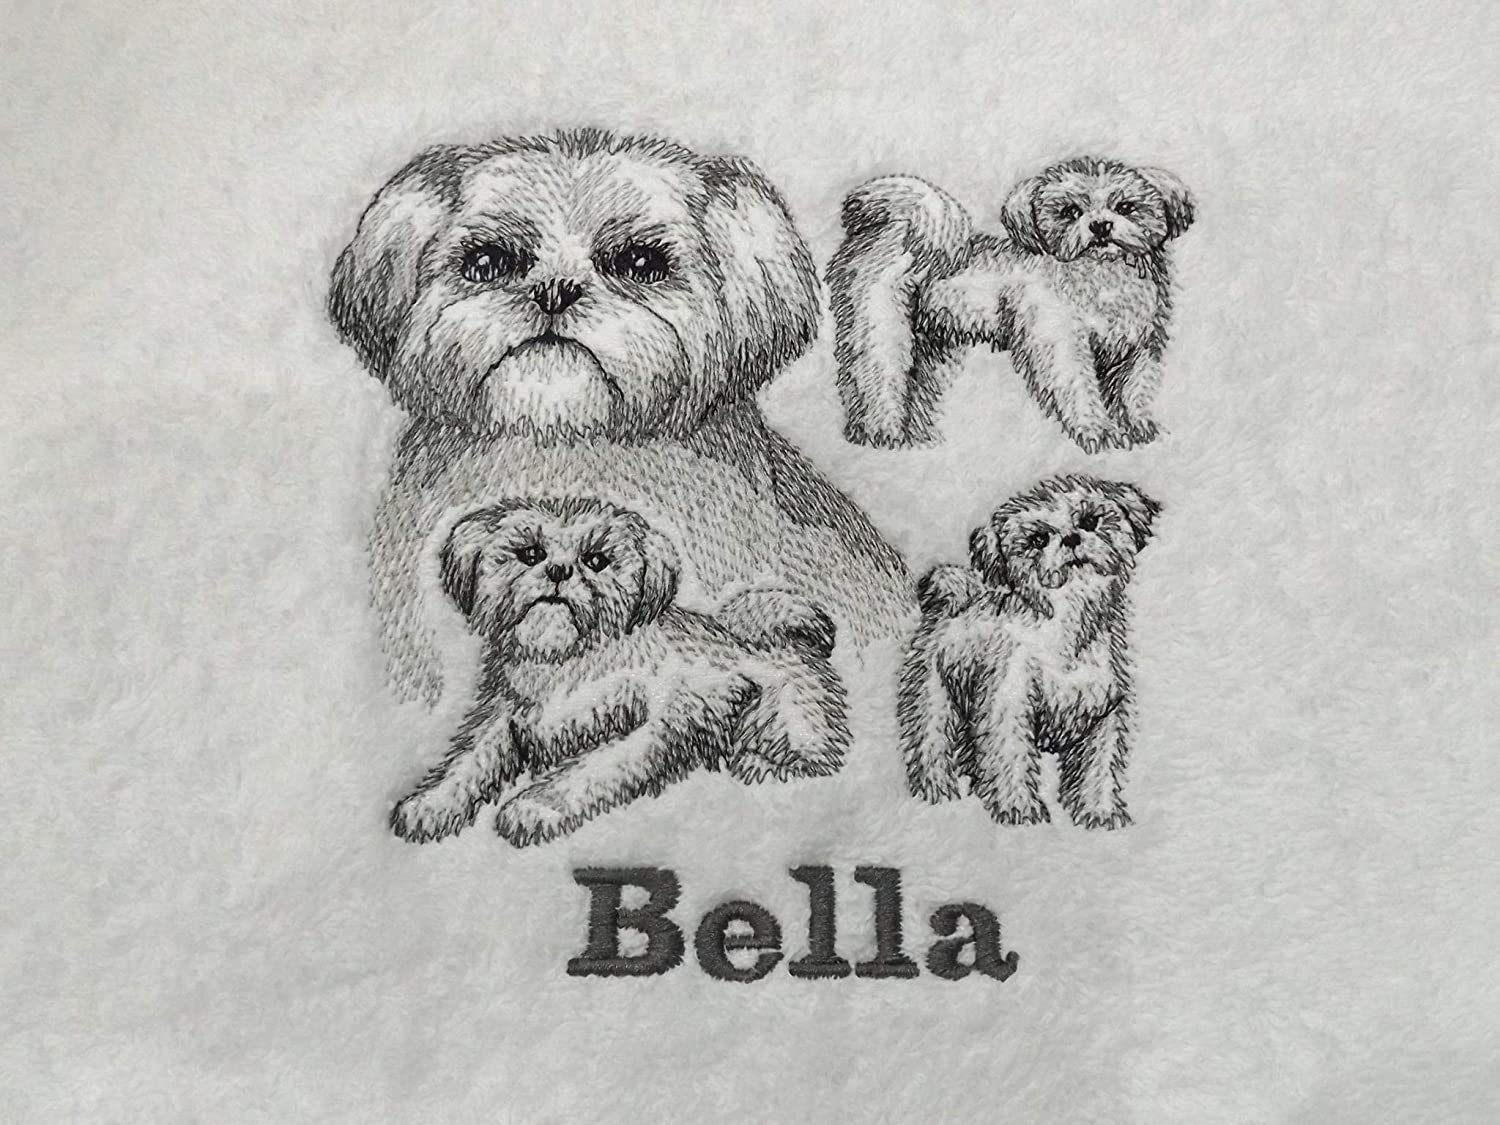 Embroidered Shih Tzu Dog Bathroom Hand Towel Personalised Gift